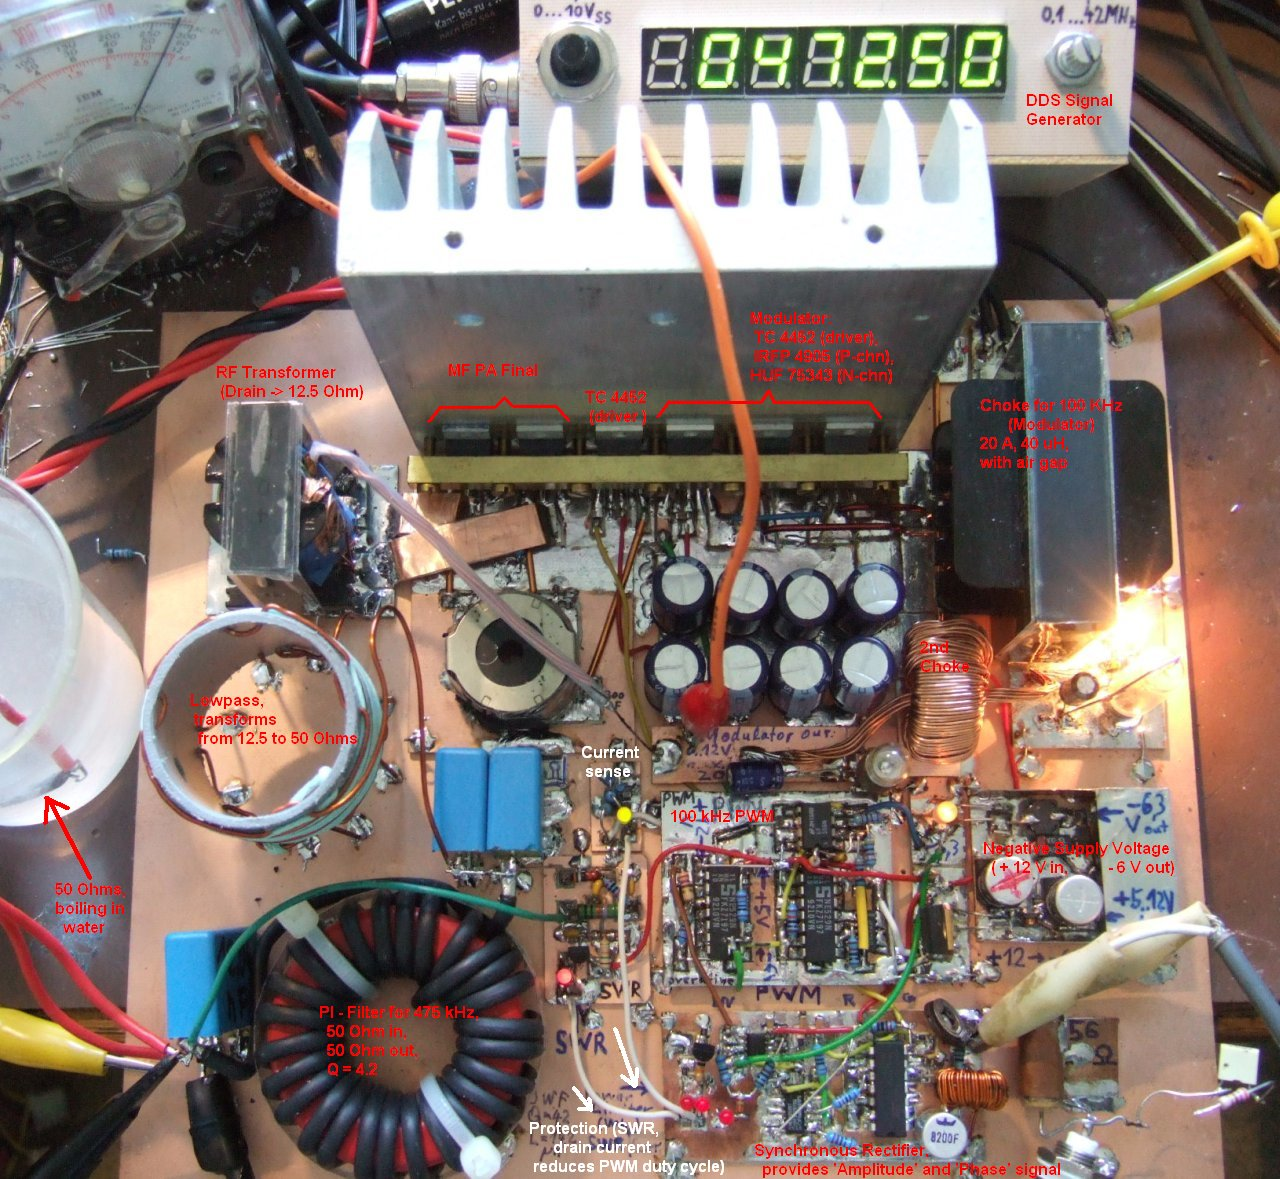 Amateur Radio Activiy on the 630 meter band (Medium Frequency)